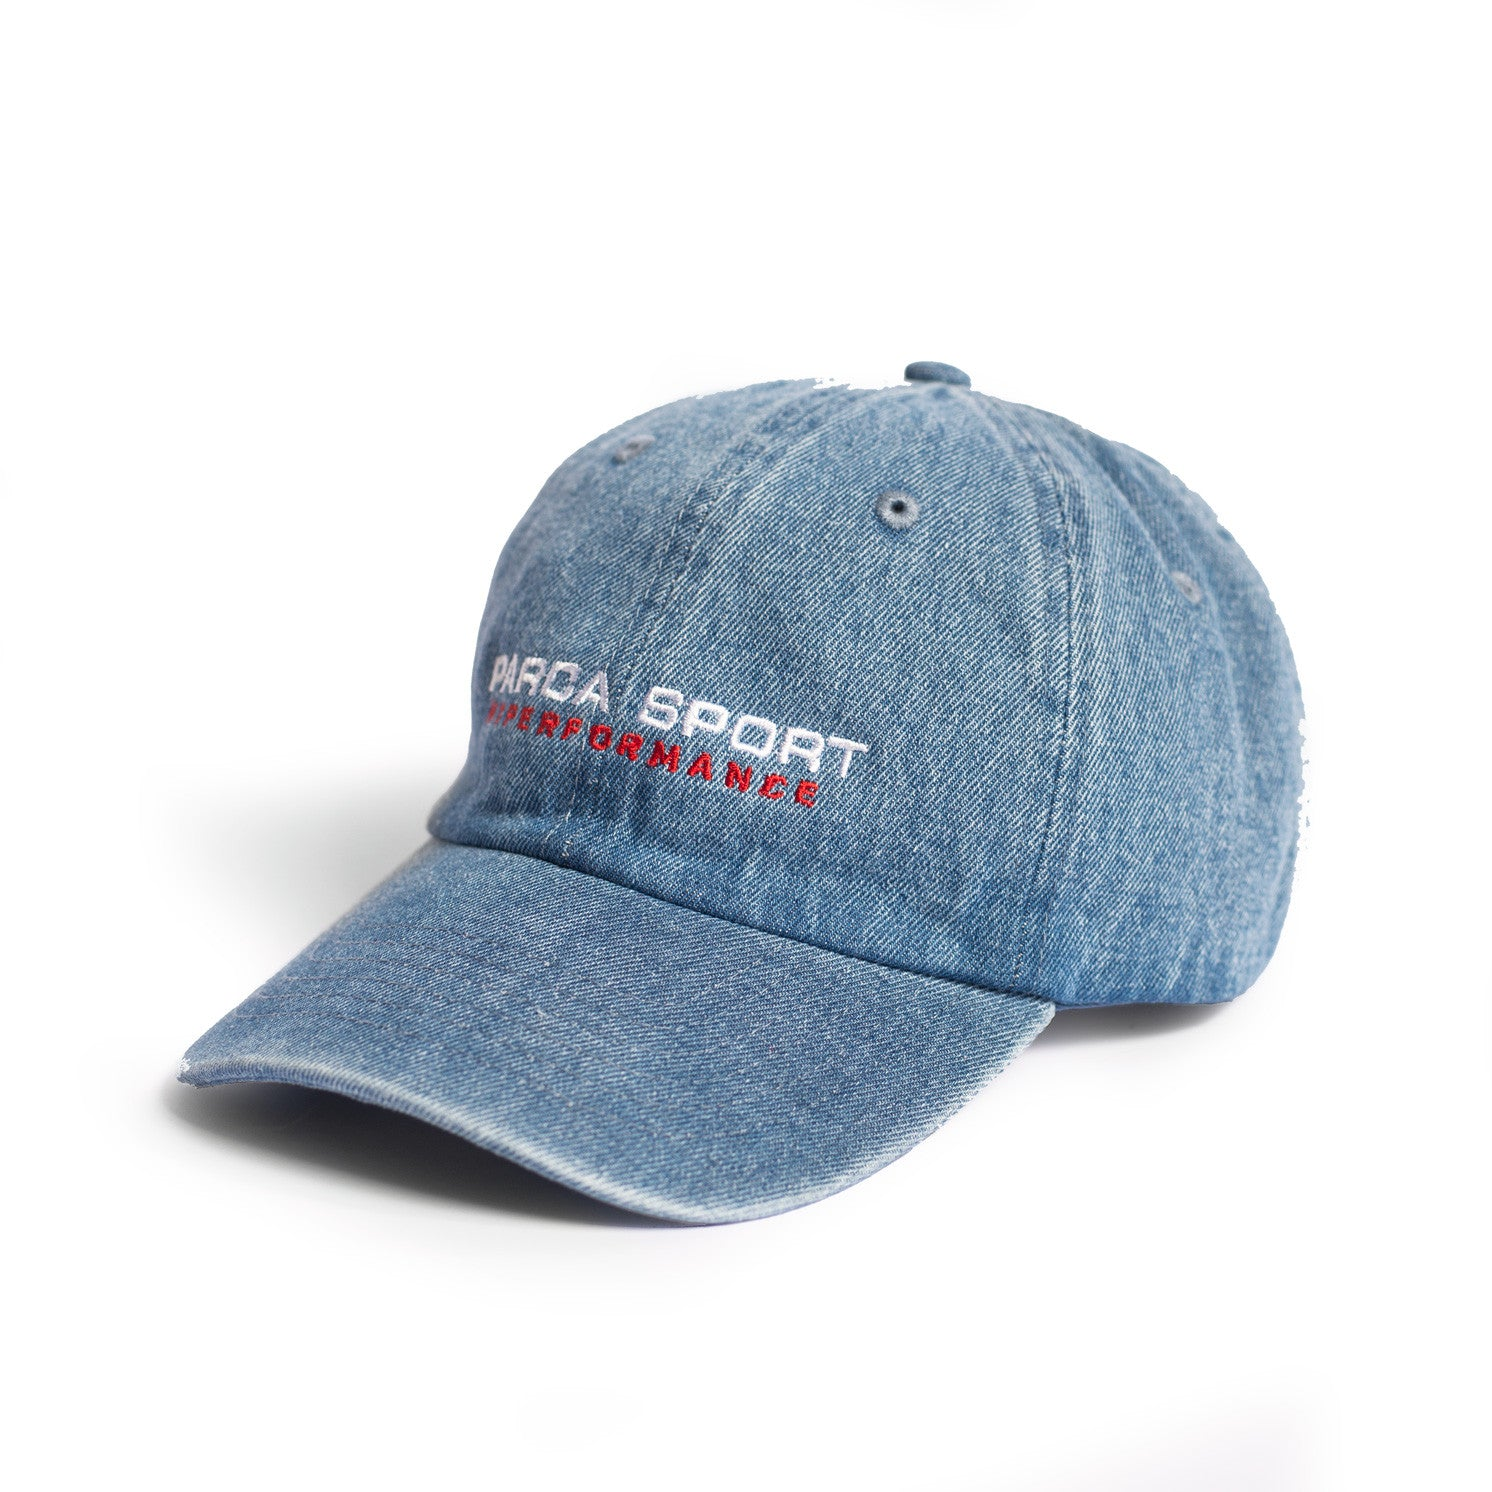 Sport Cap - Hyperformance - Denim